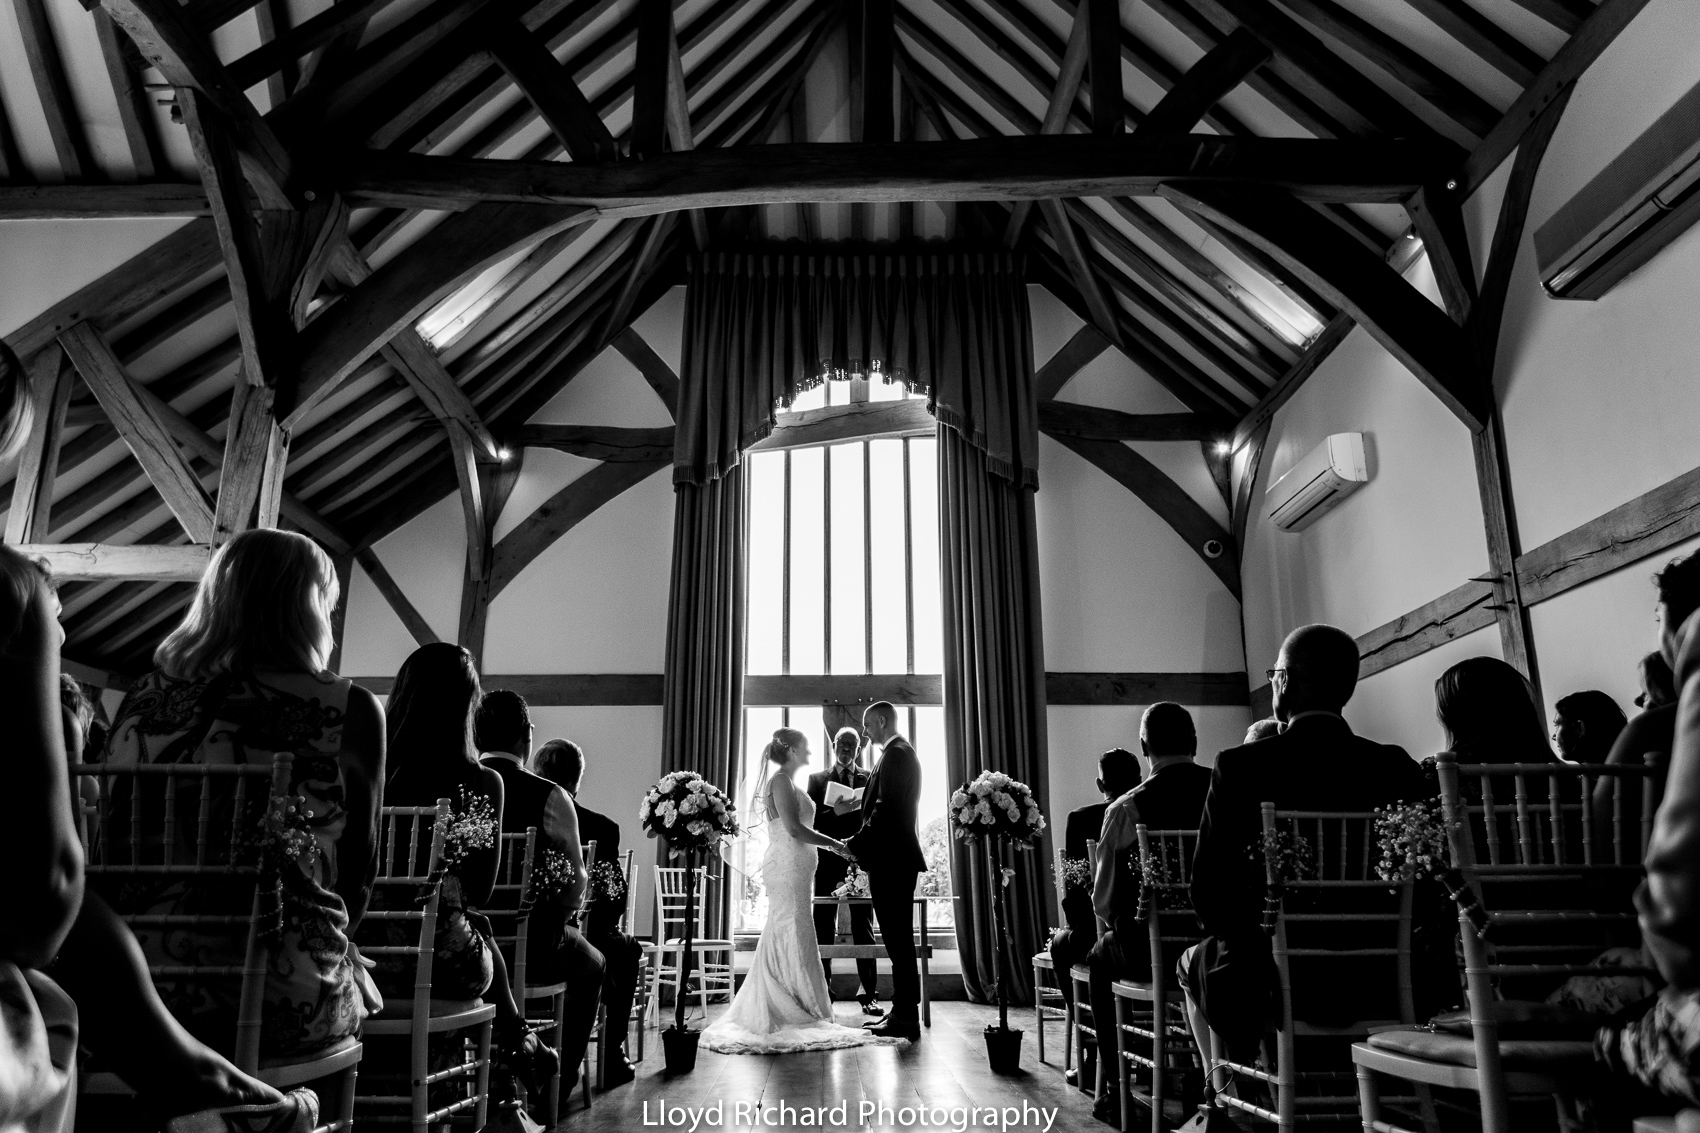 The Music room during wedding ceremony at Cain Manor